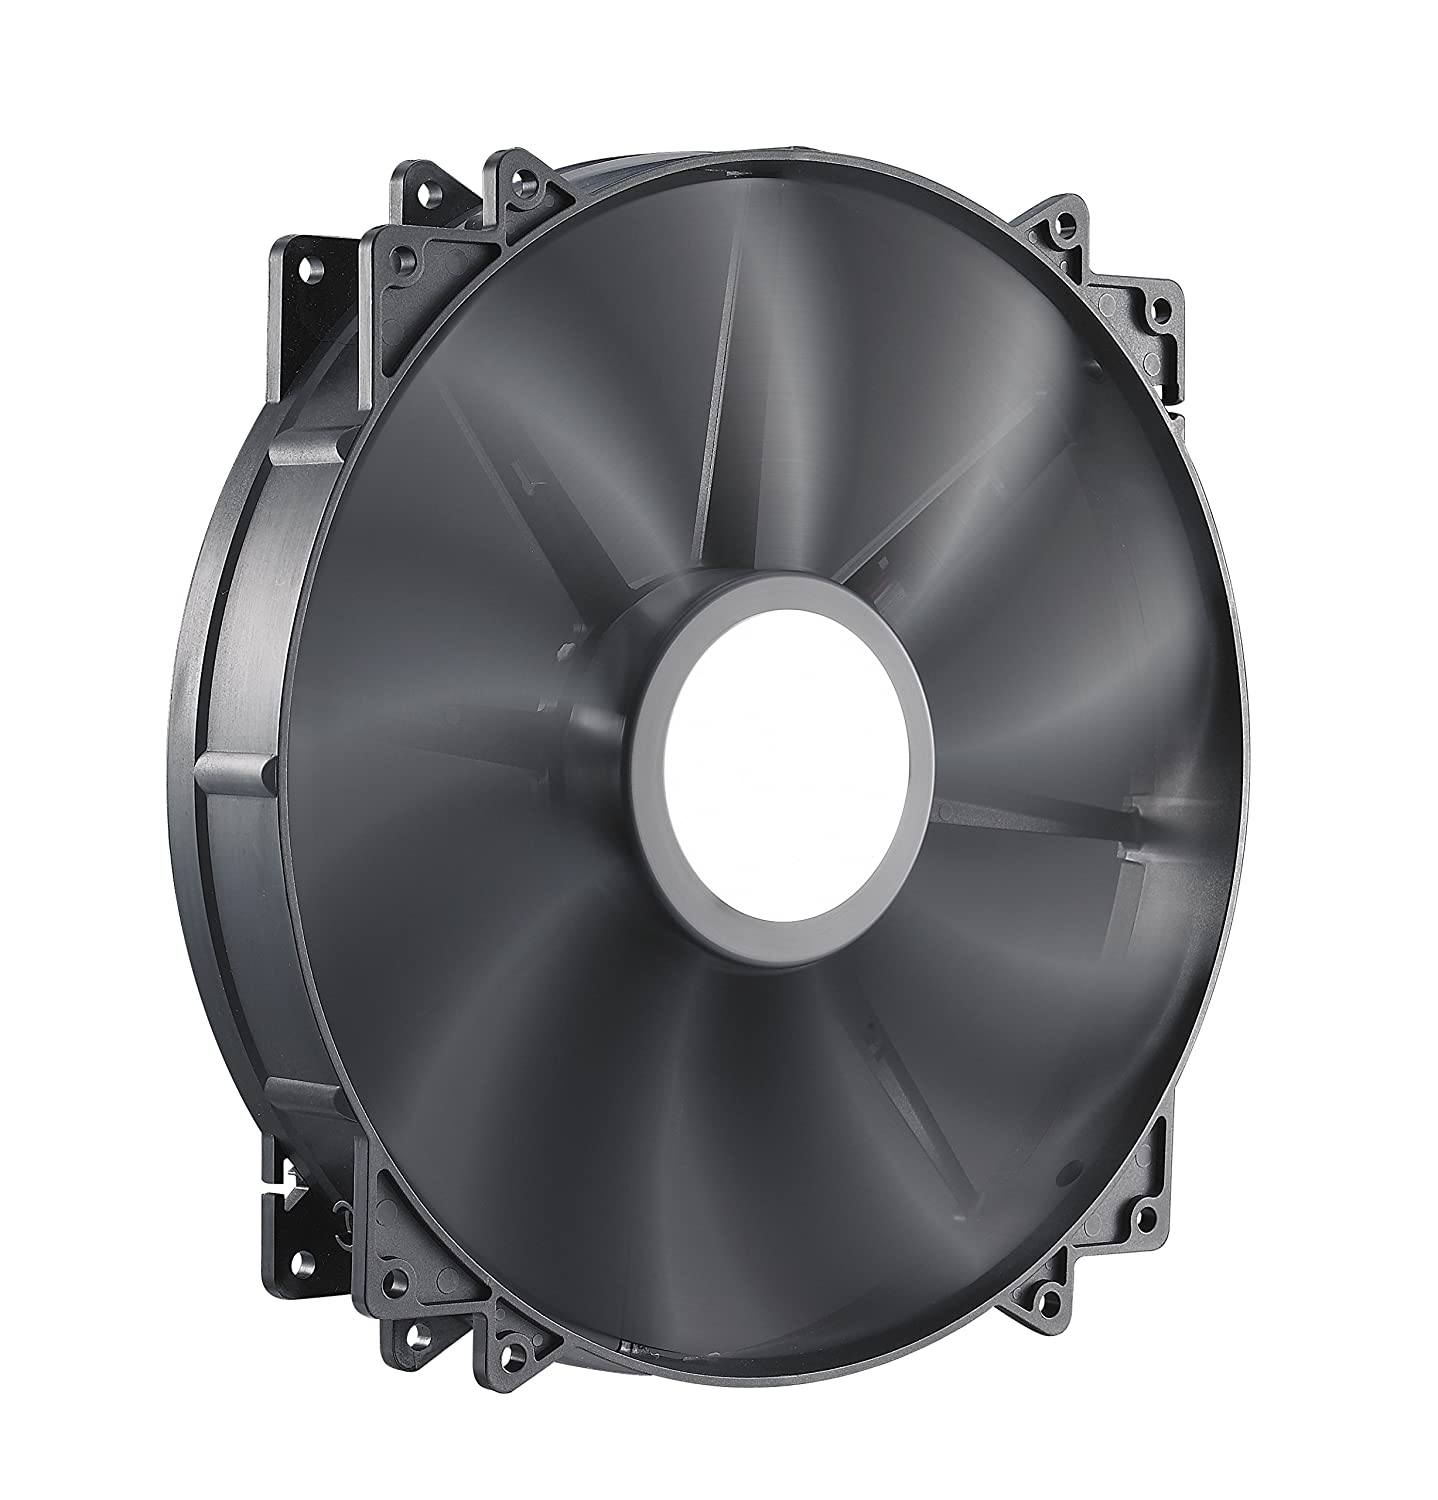 Home Cooling Fans : Auxiliary cooling fan test avs forum home theater